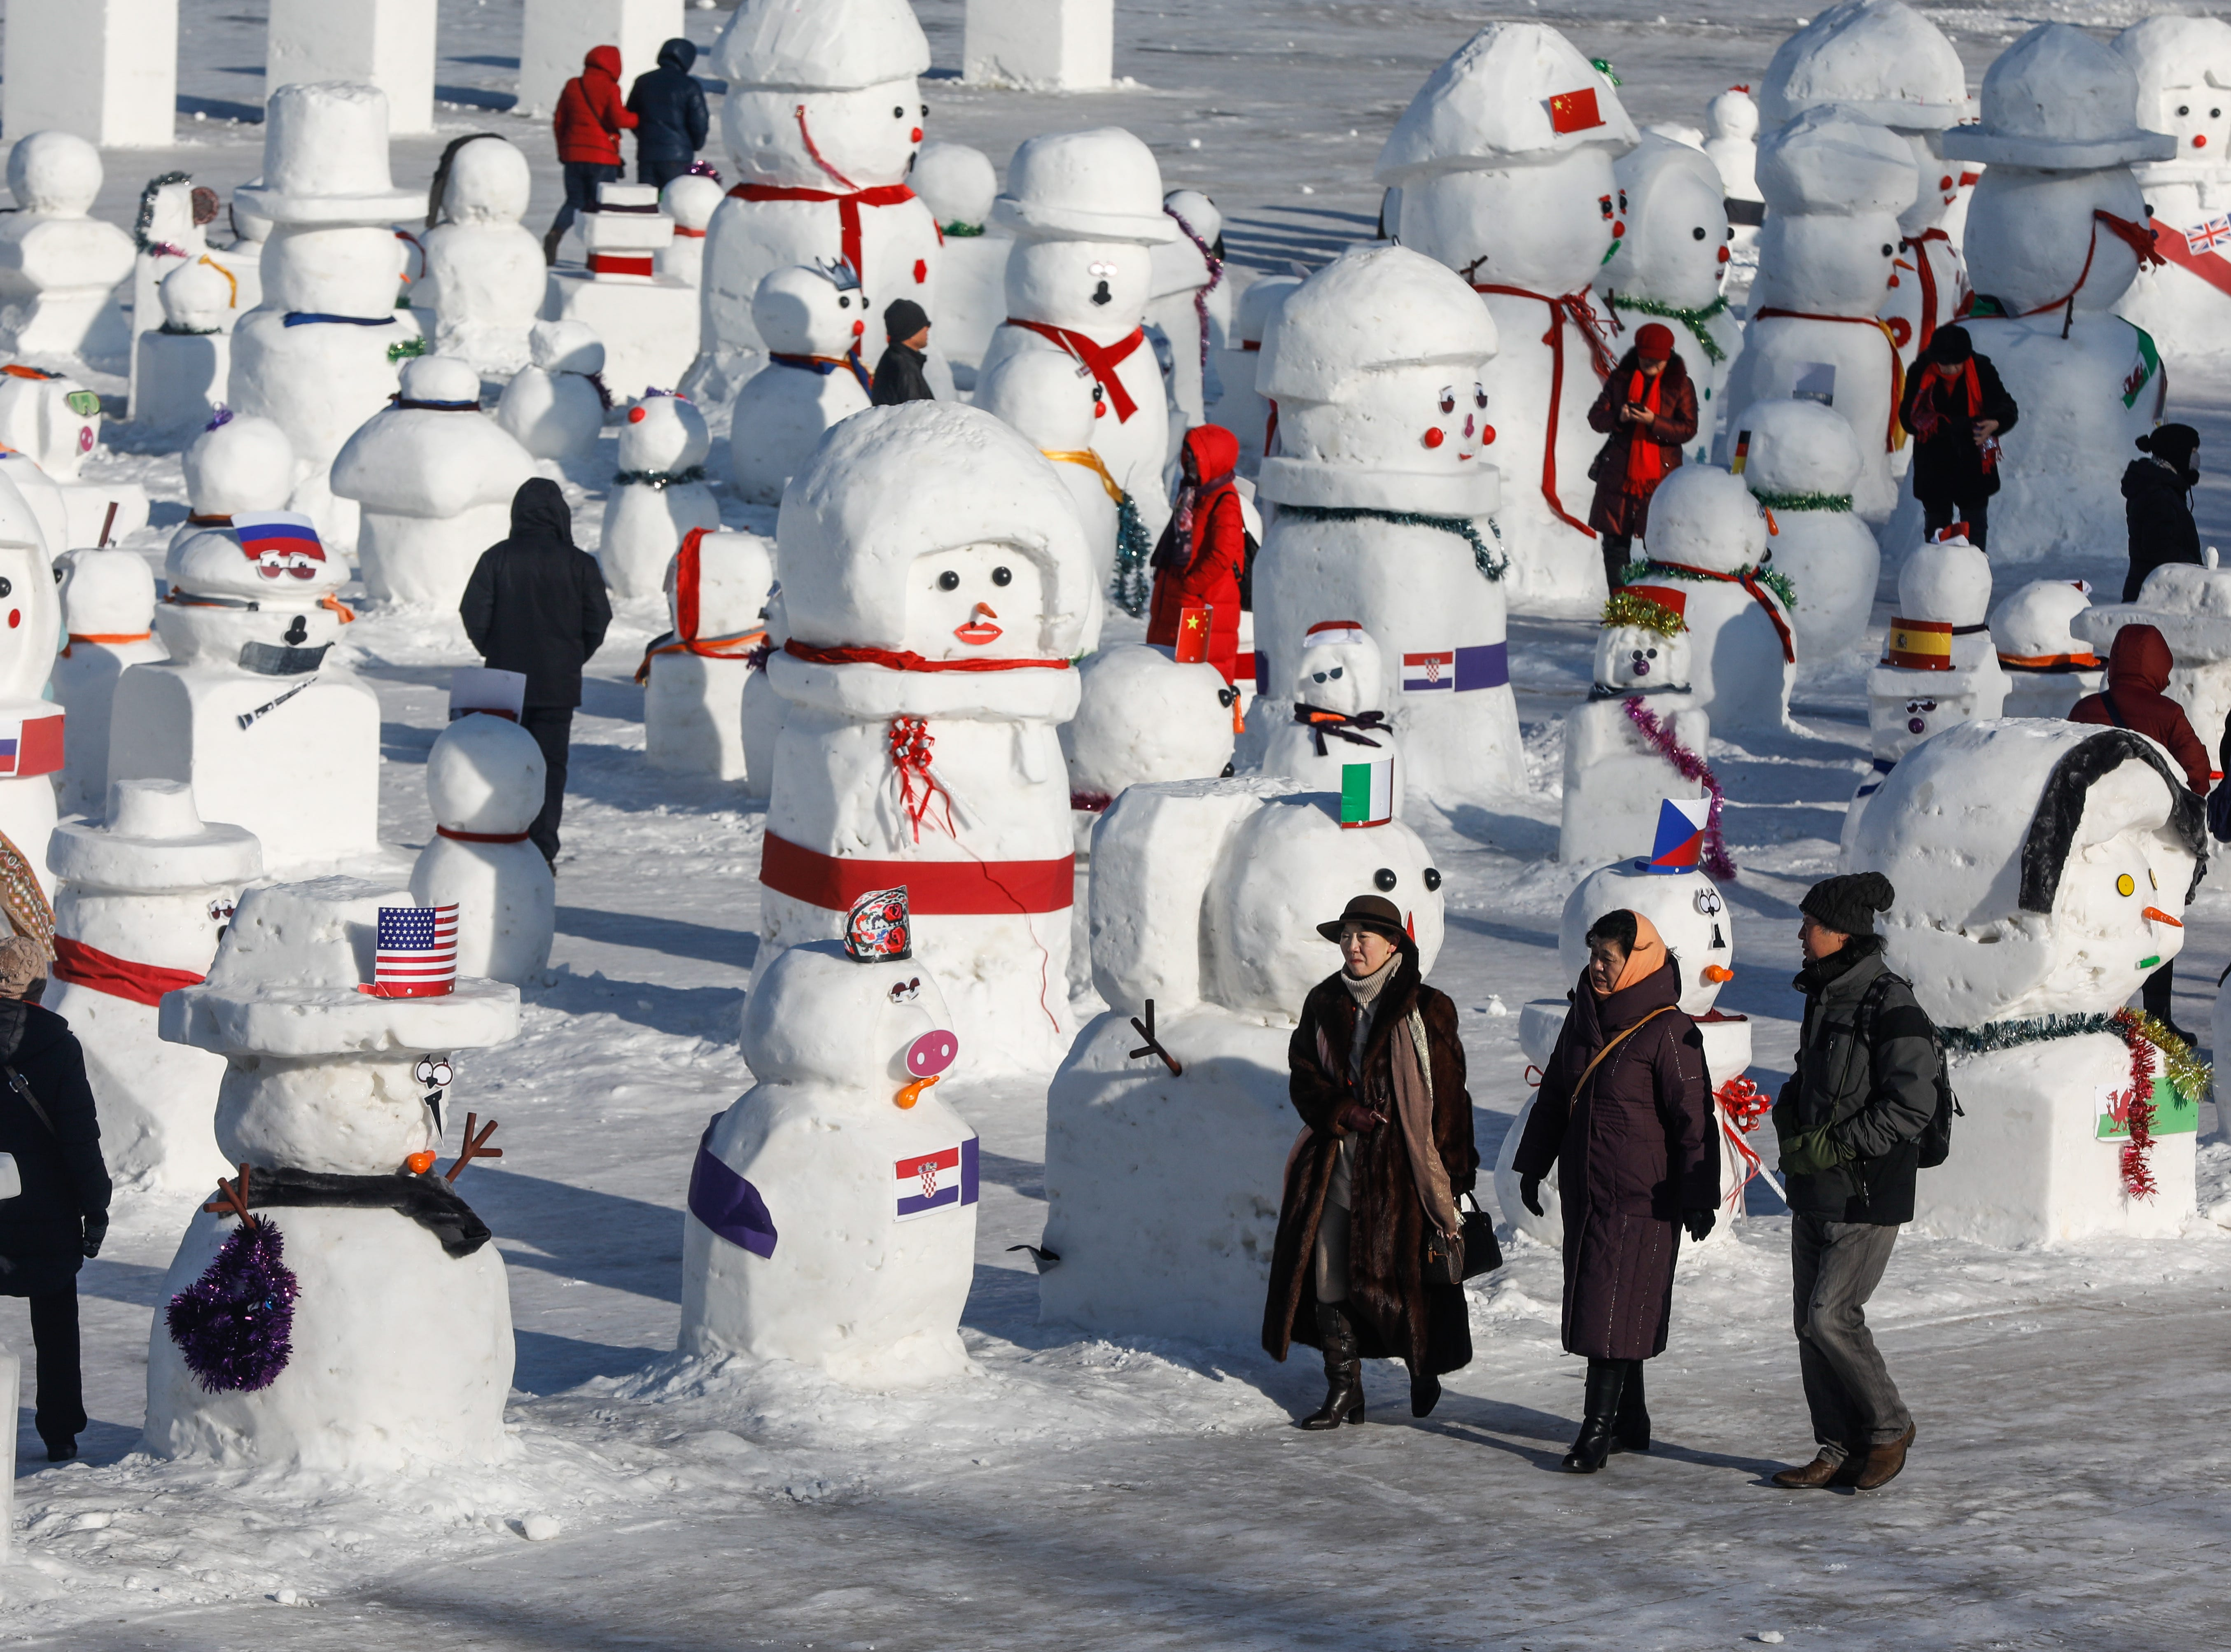 People walk next to snowmen at the Songhua River during the annual International Ice and Snow Festival in Harbin city, China's northern Heilongjiang province on Jan. 5, 2019. Harbin International Ice and Snow Sculpture Festival is the World's largest ice and snow festival.